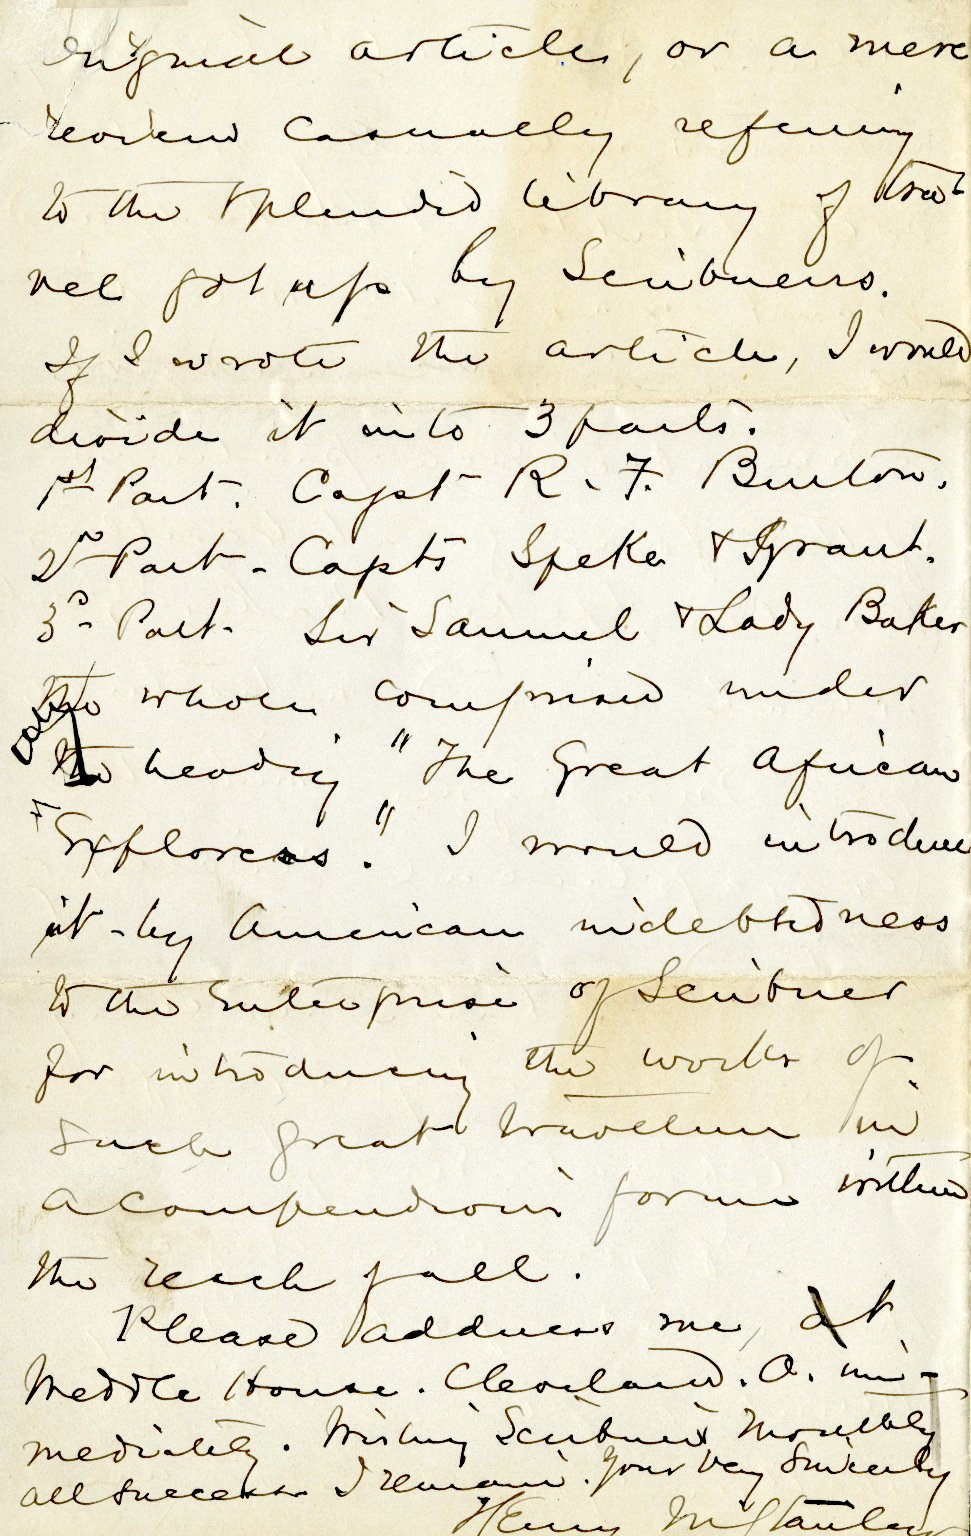 Stanley, Henry M. ALS, 4 pages, February 13, 1873